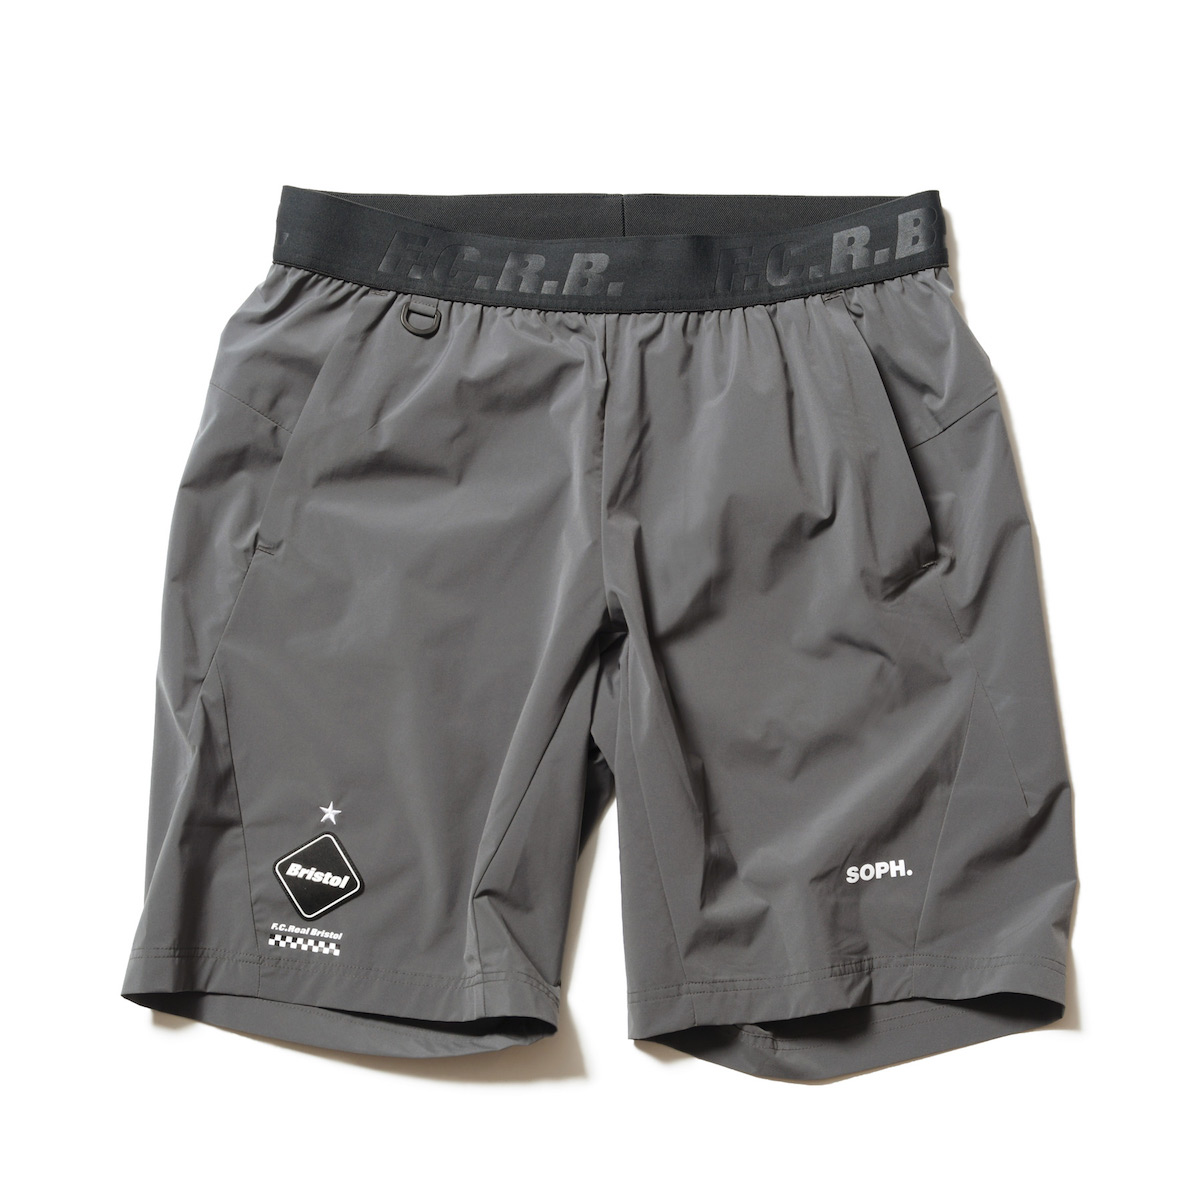 F.C.Real Bristol / STRETCH LIGHT WEIGHT SHORTS -Gray